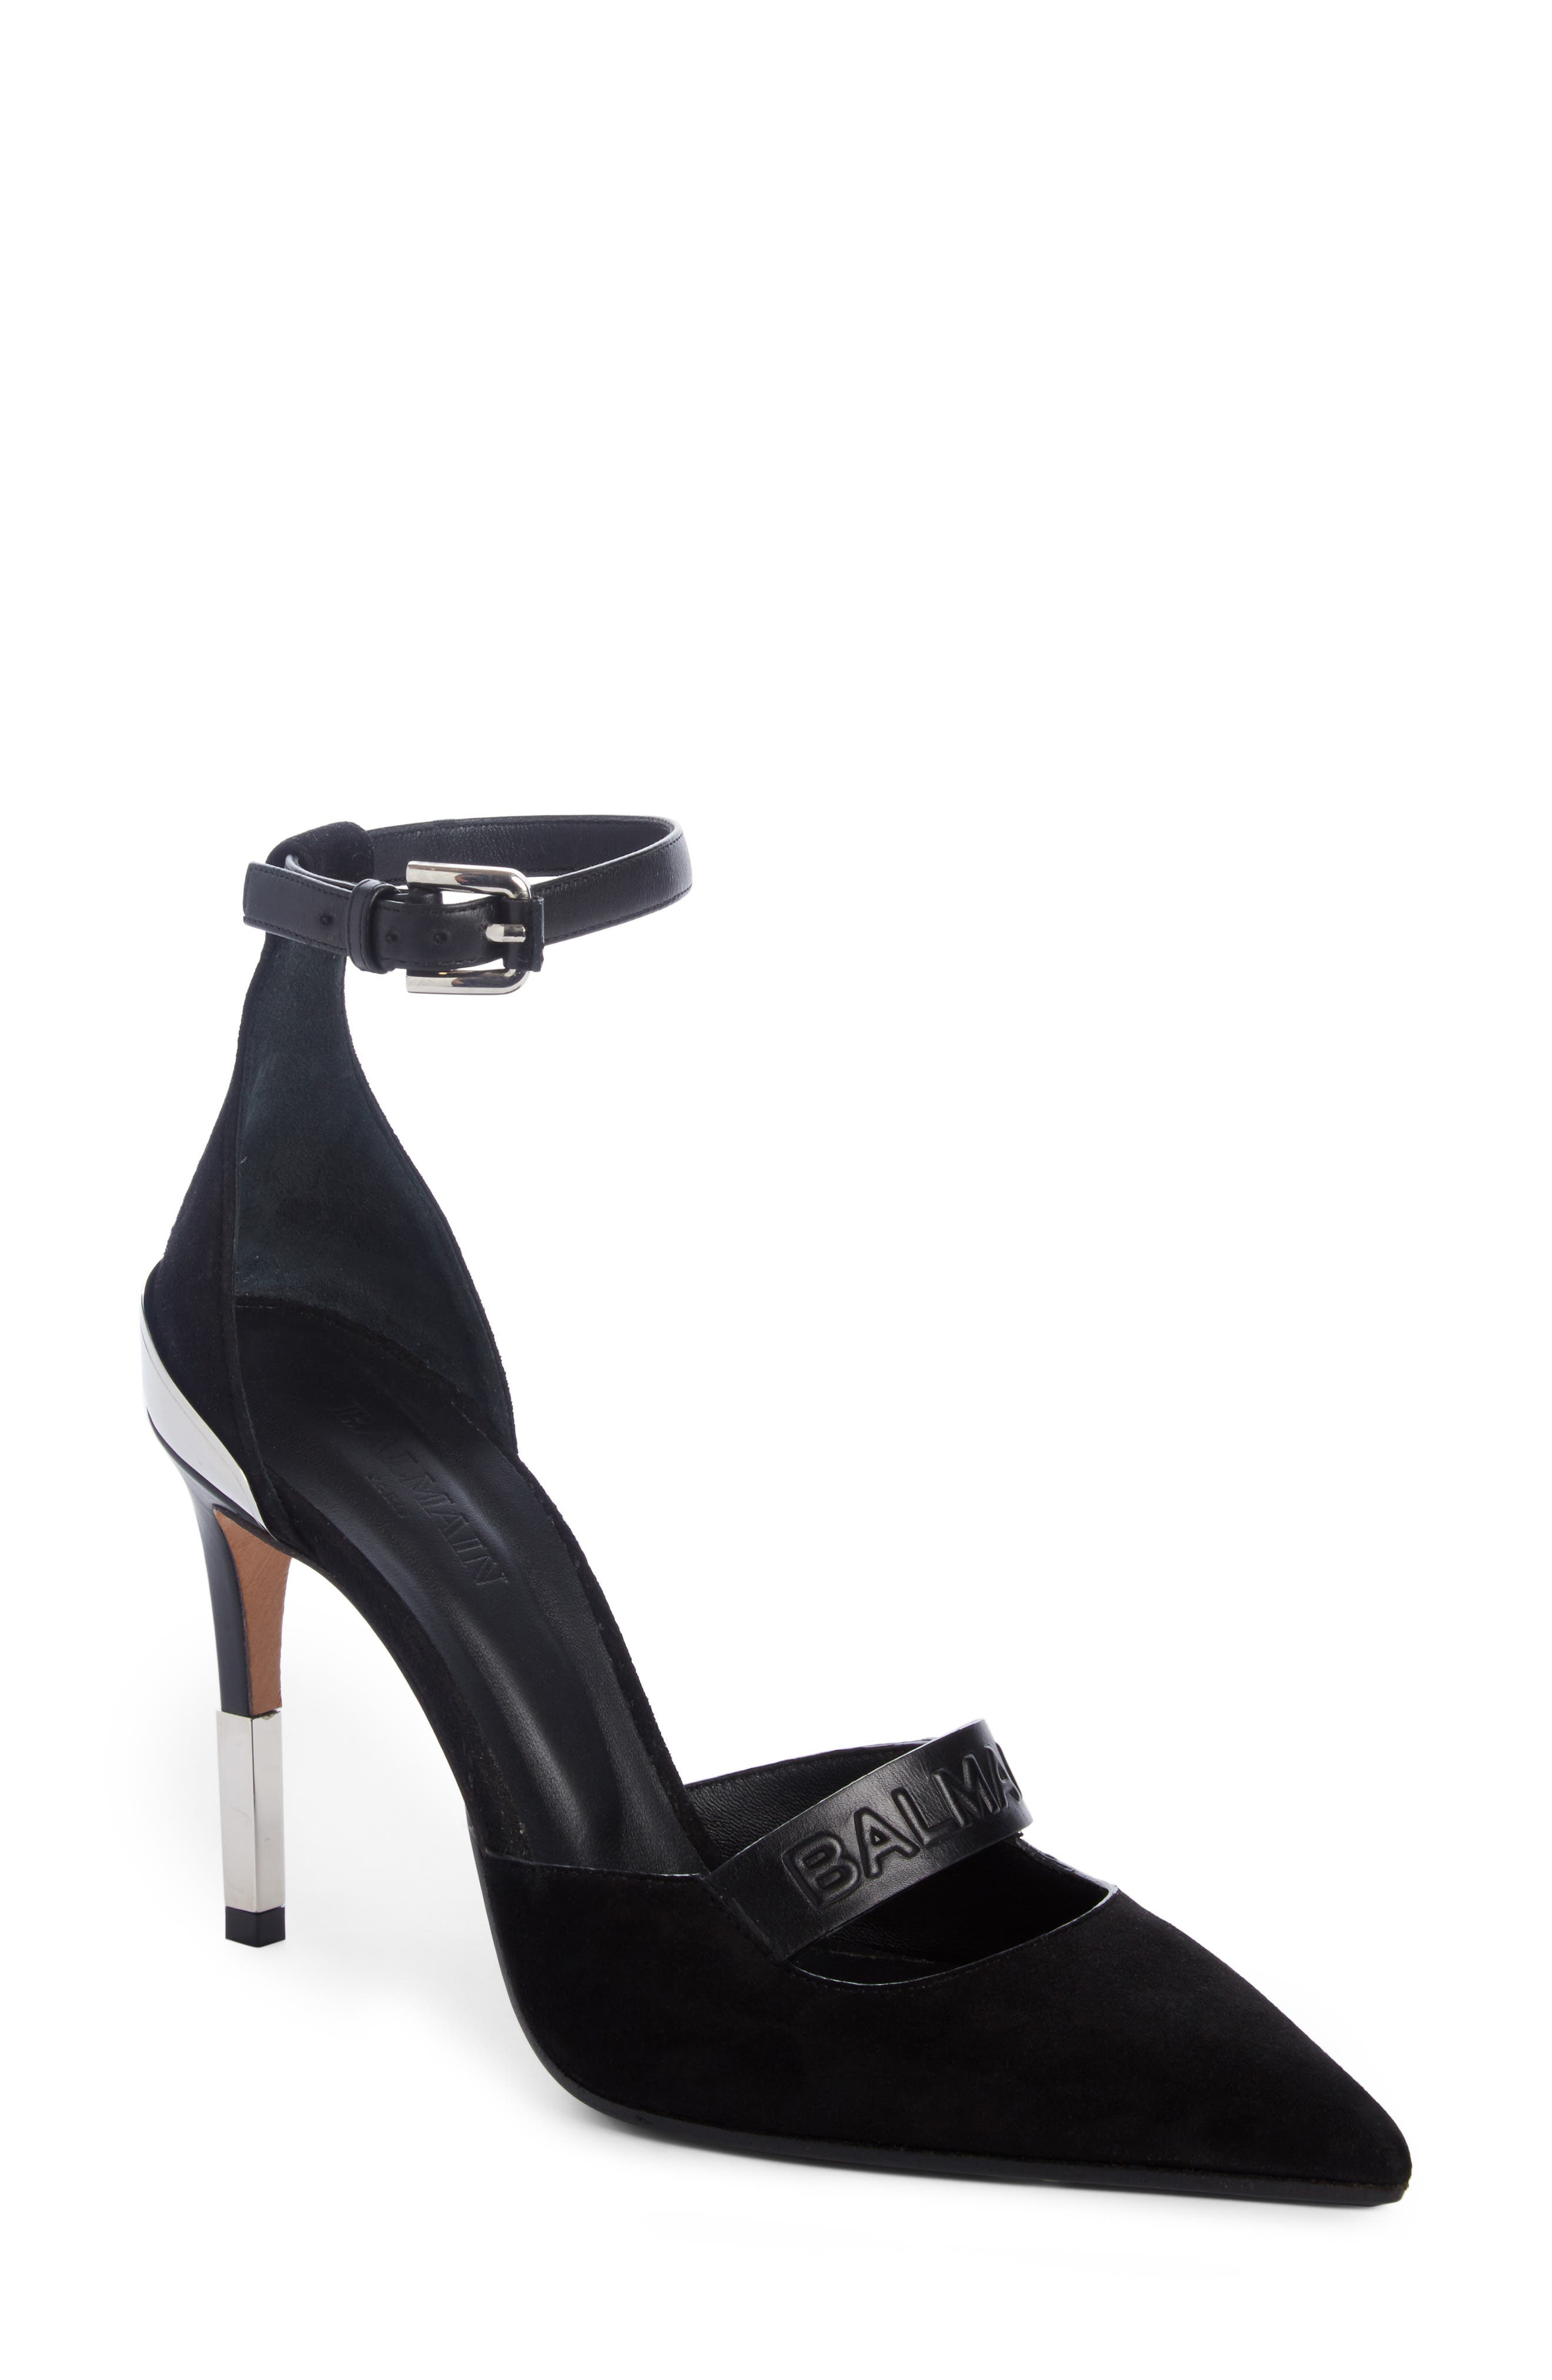 Alternate Image 1 Selected - Balmain Chance Ankle Strap Pointy Toe Pump (Women)